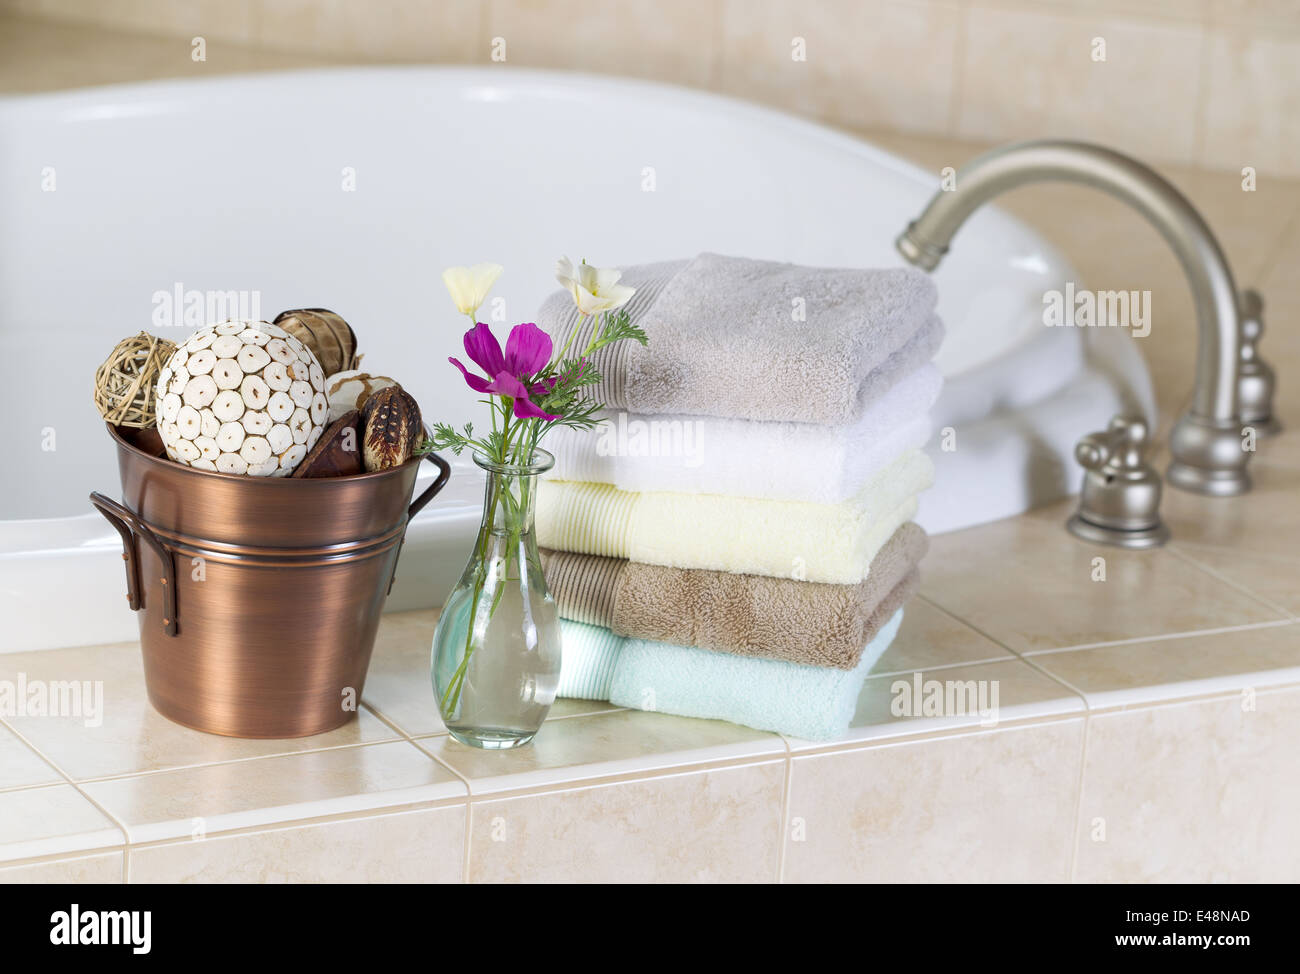 Relaxing soaking tub and spa accessories Stock Photo: 71492469 - Alamy